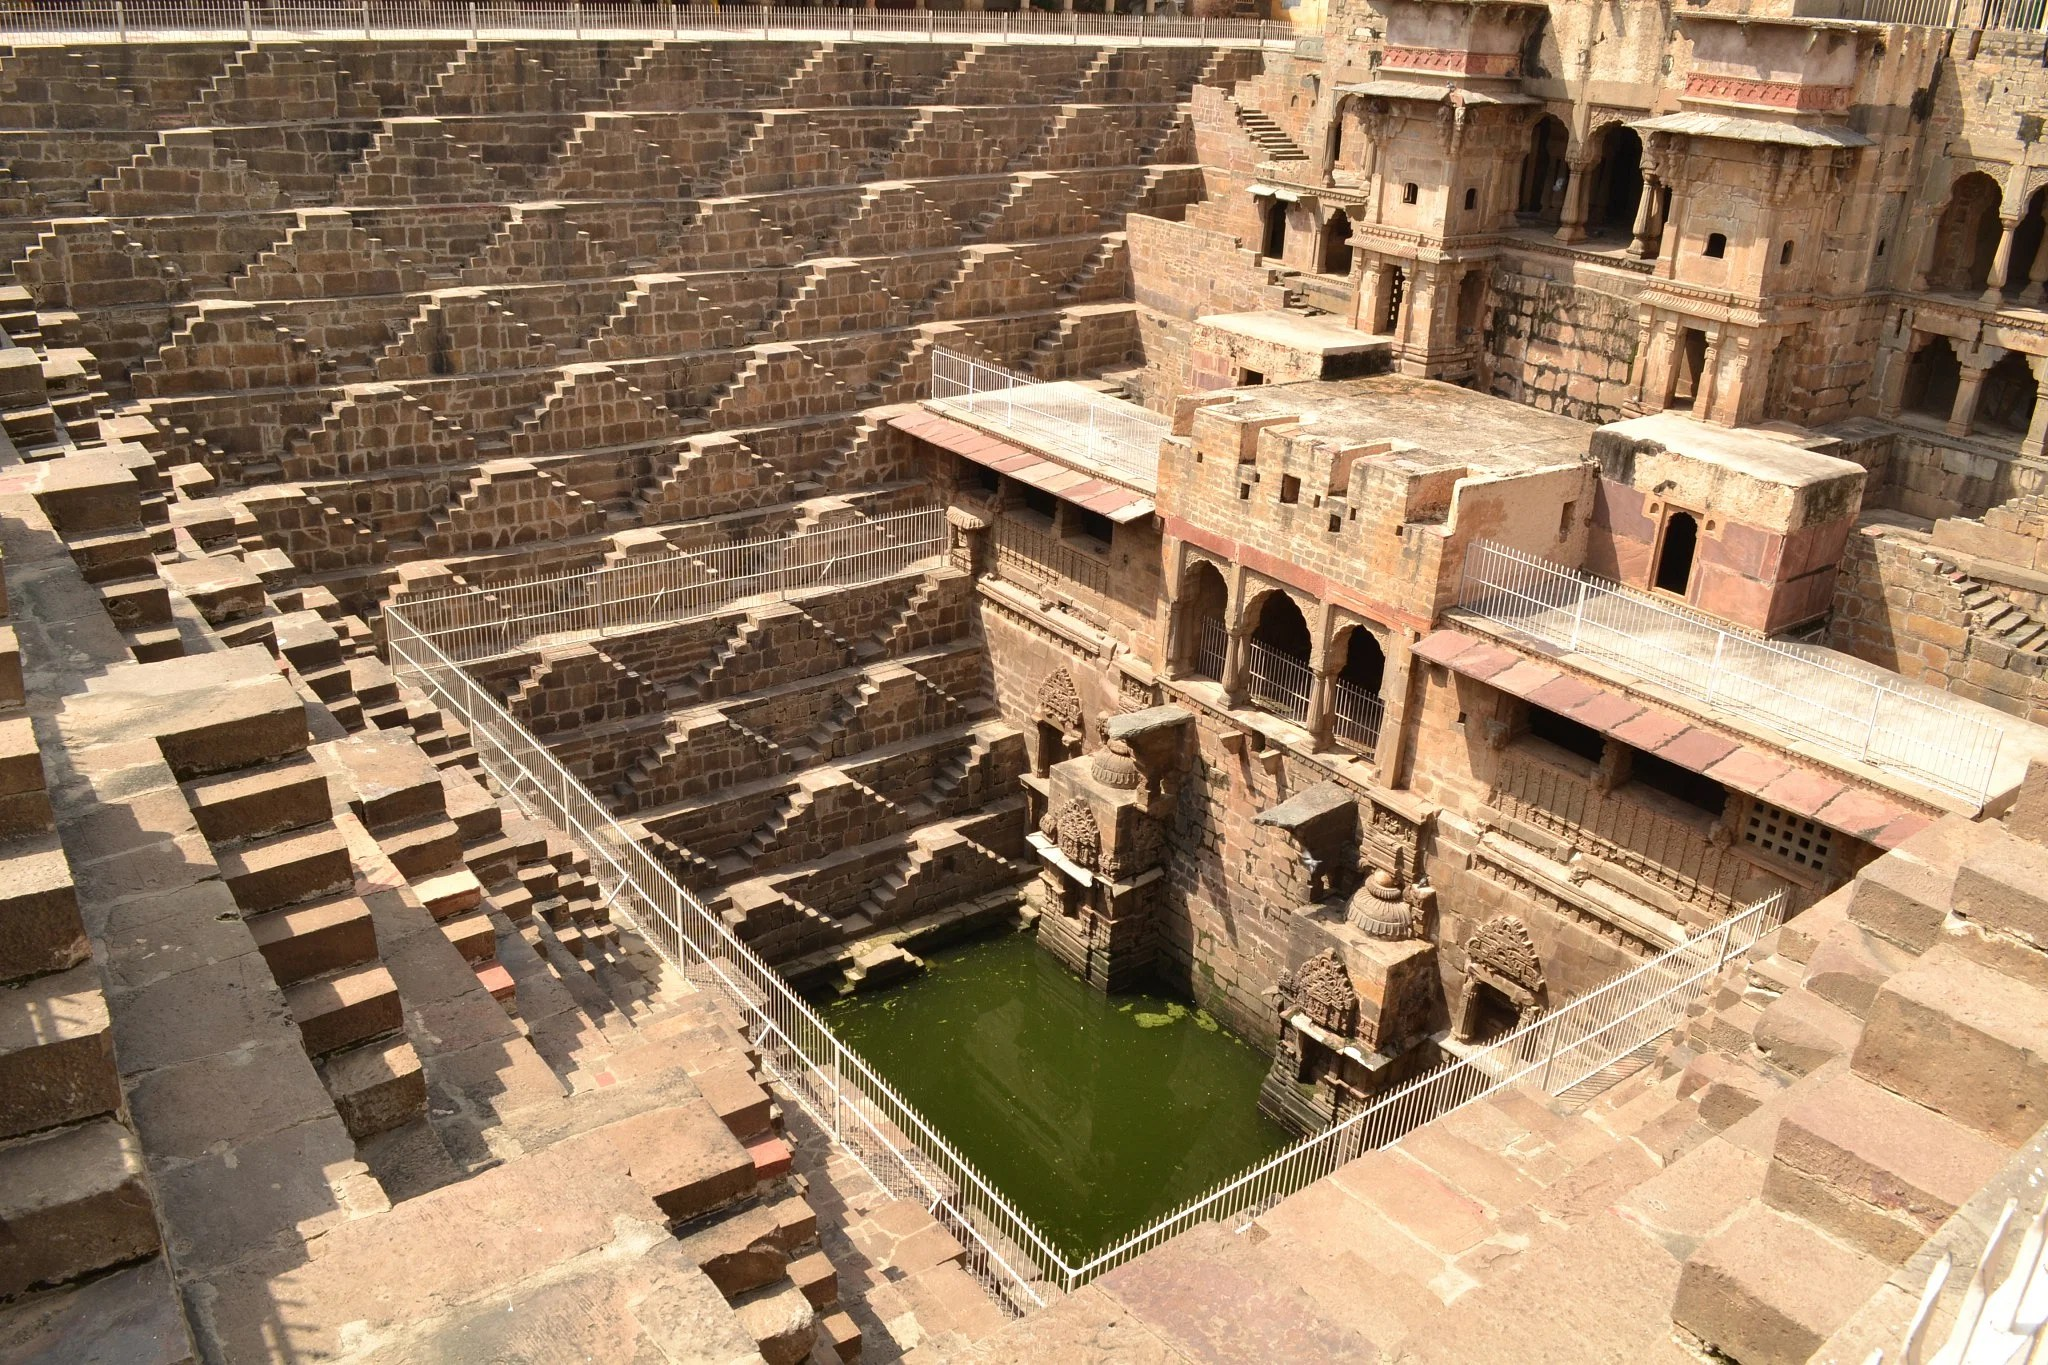 Chand_Baori_(Step-well)_at_Abhaneri